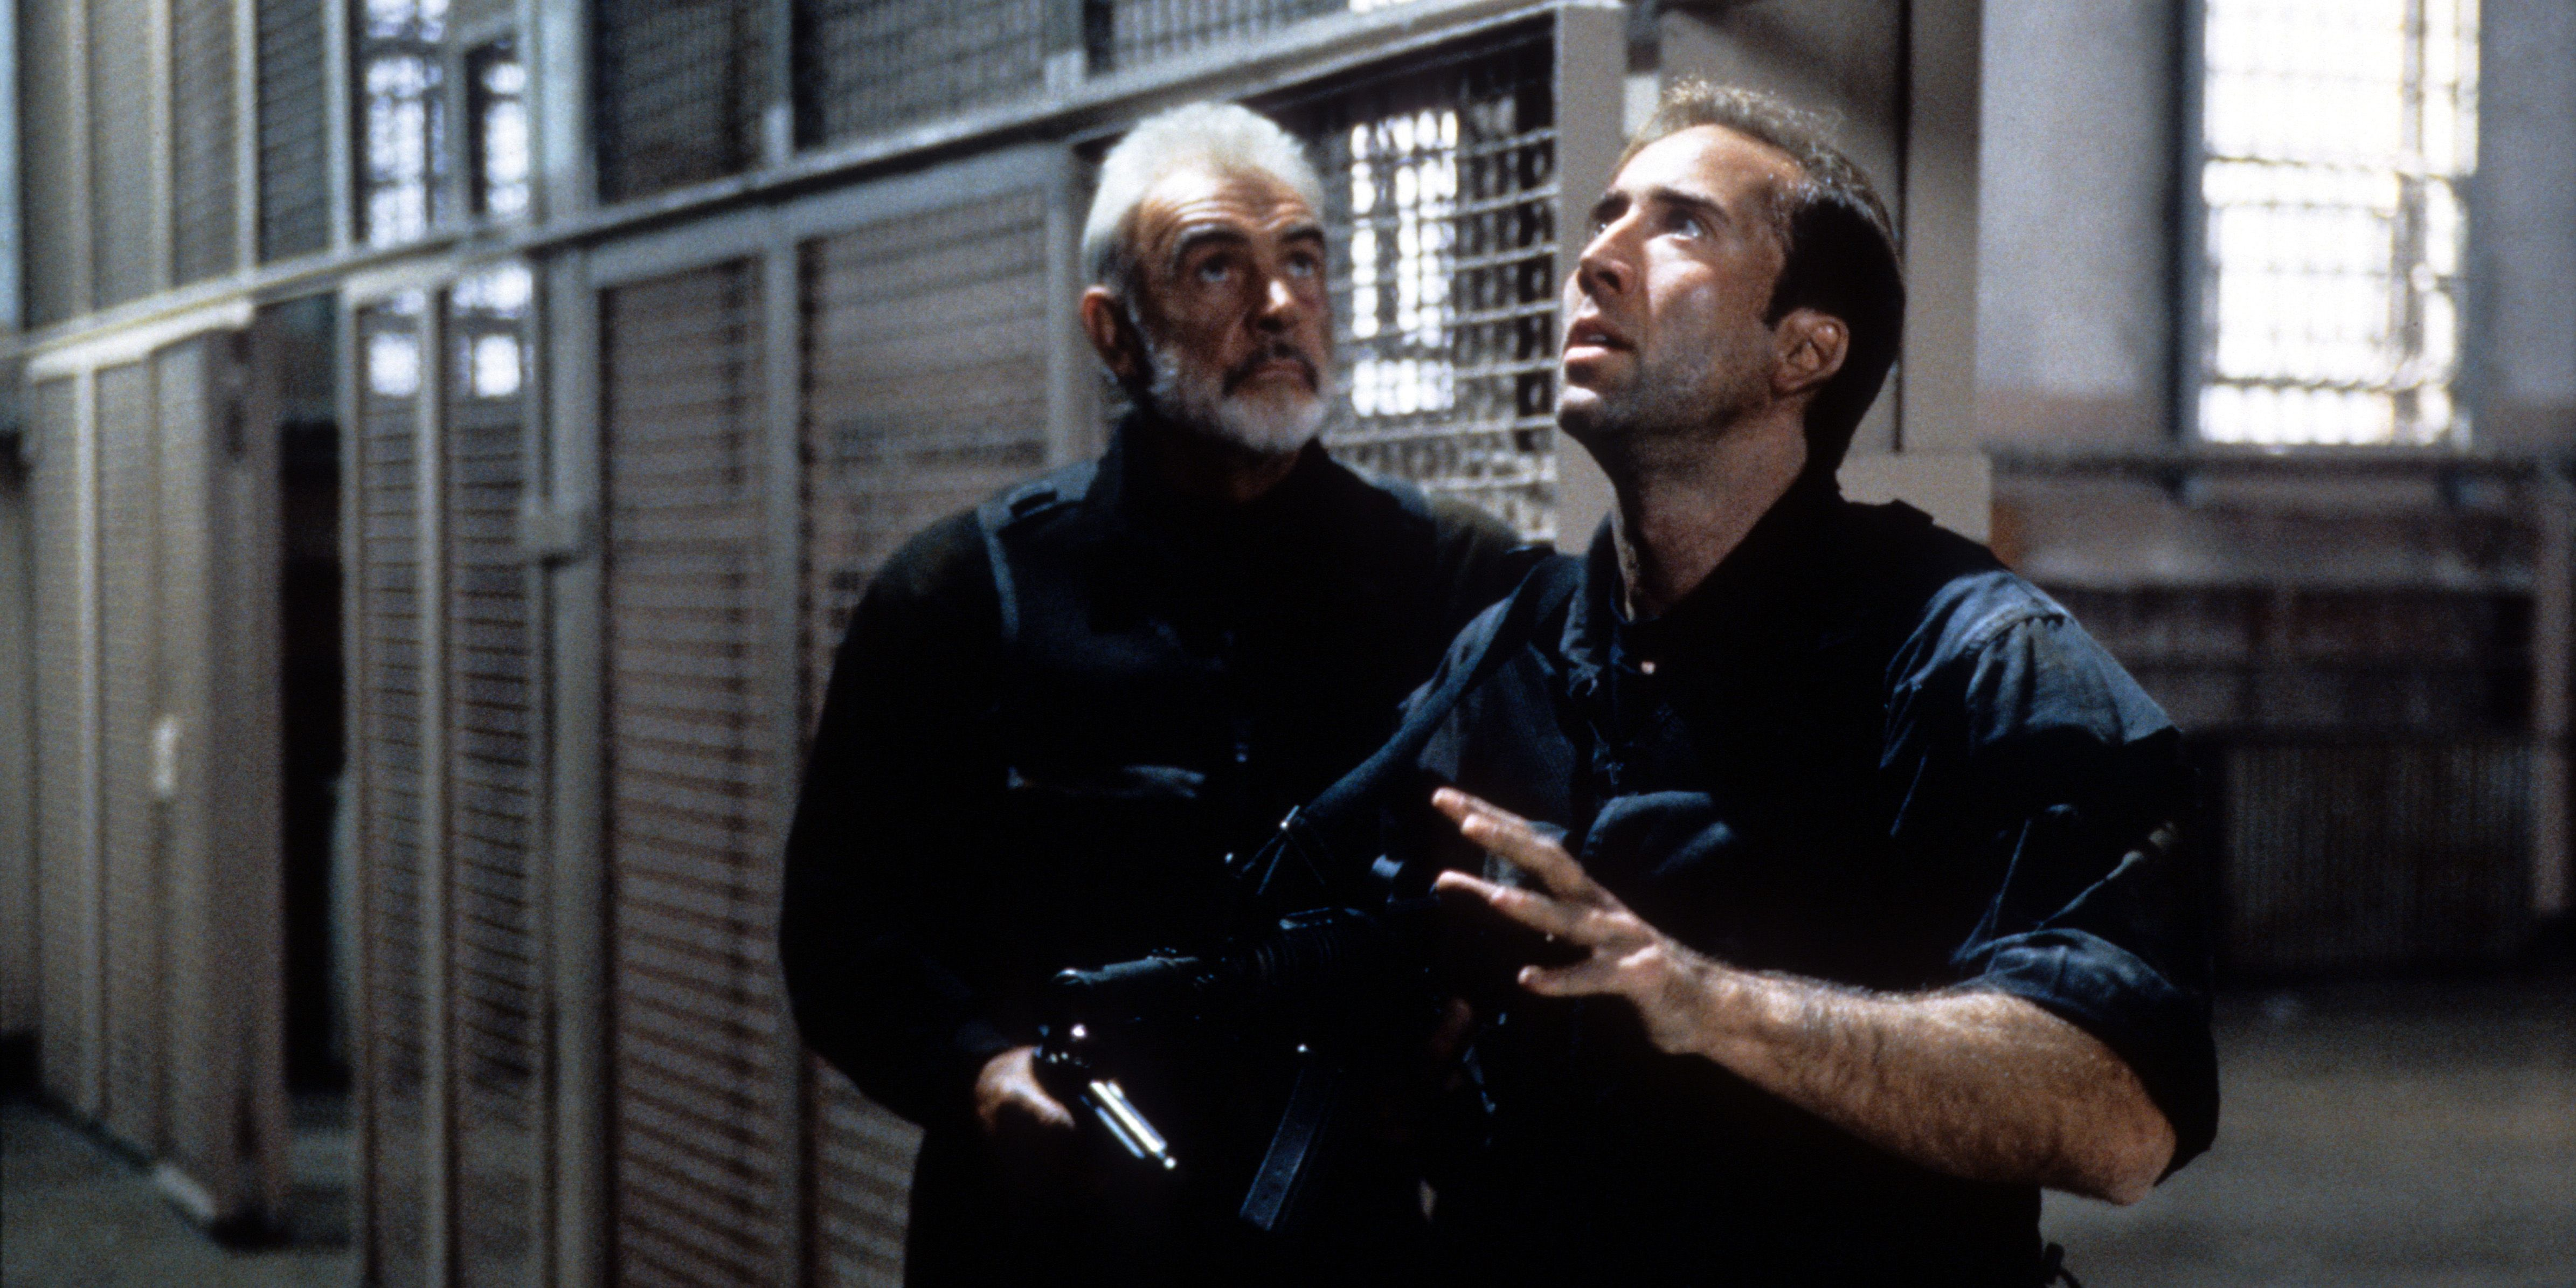 Sean Connery and Nicolas Cage in a scene from the film 'The Rock' (1996)